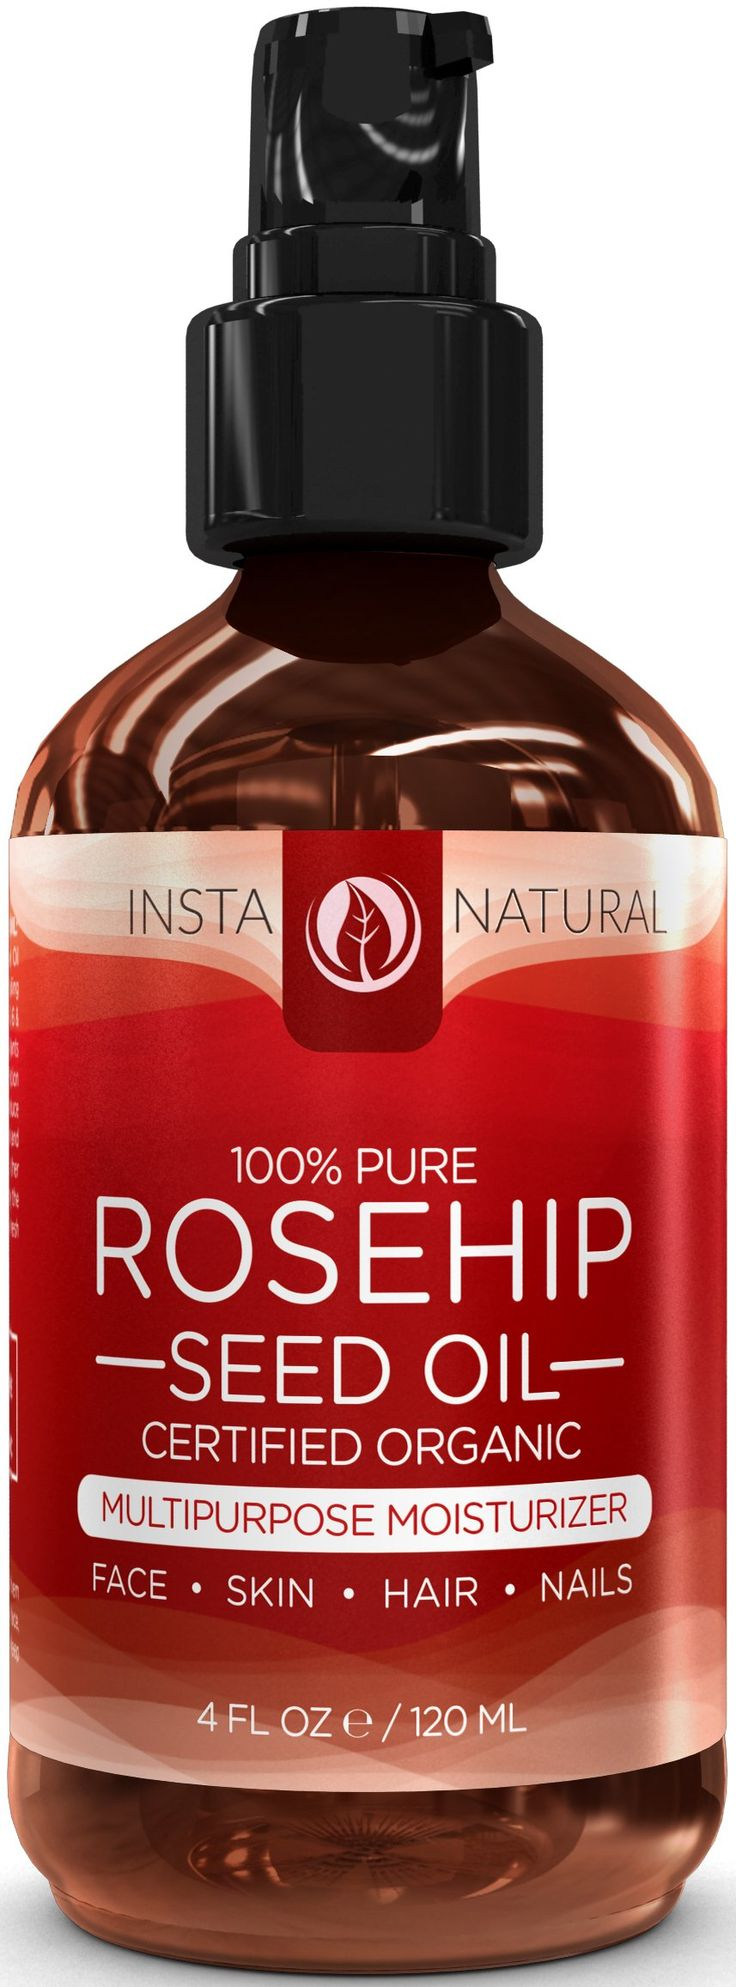 ORGANIC Rosehip Oil - 100% Pure & USDA Certified -HUGE 4OZ- Great Moisturizer for Skin, Hair, Stretch Marks, Scars, Discoloration, Wrinkles & Fine Lines - BEST Unrefined, Cold Pressed Virgin Rosehip Seed Oil For Face and Skin - Guaranteed Results